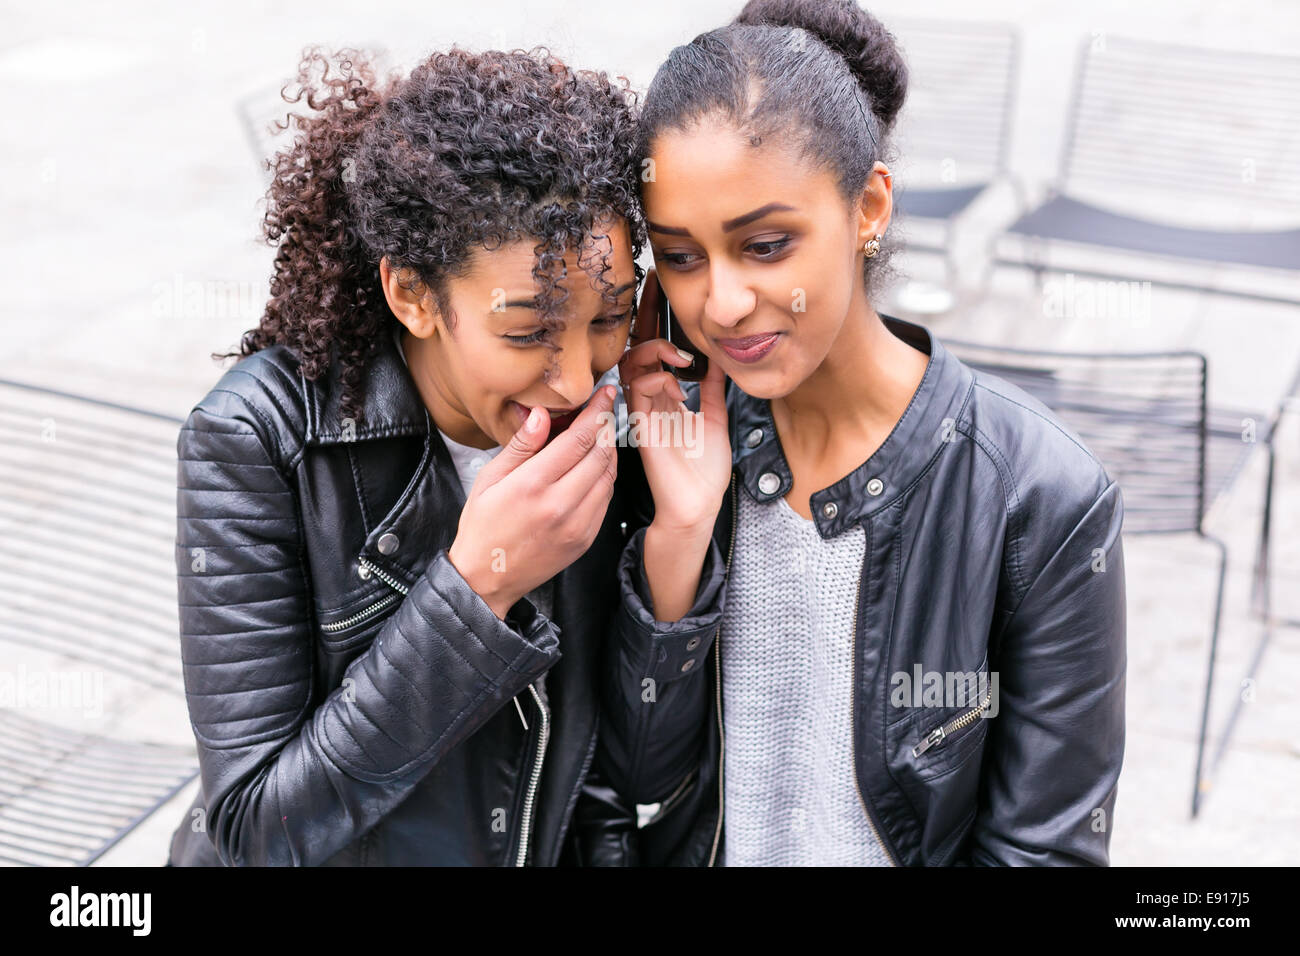 Two north African teen friends sitting together talking - Stock Image